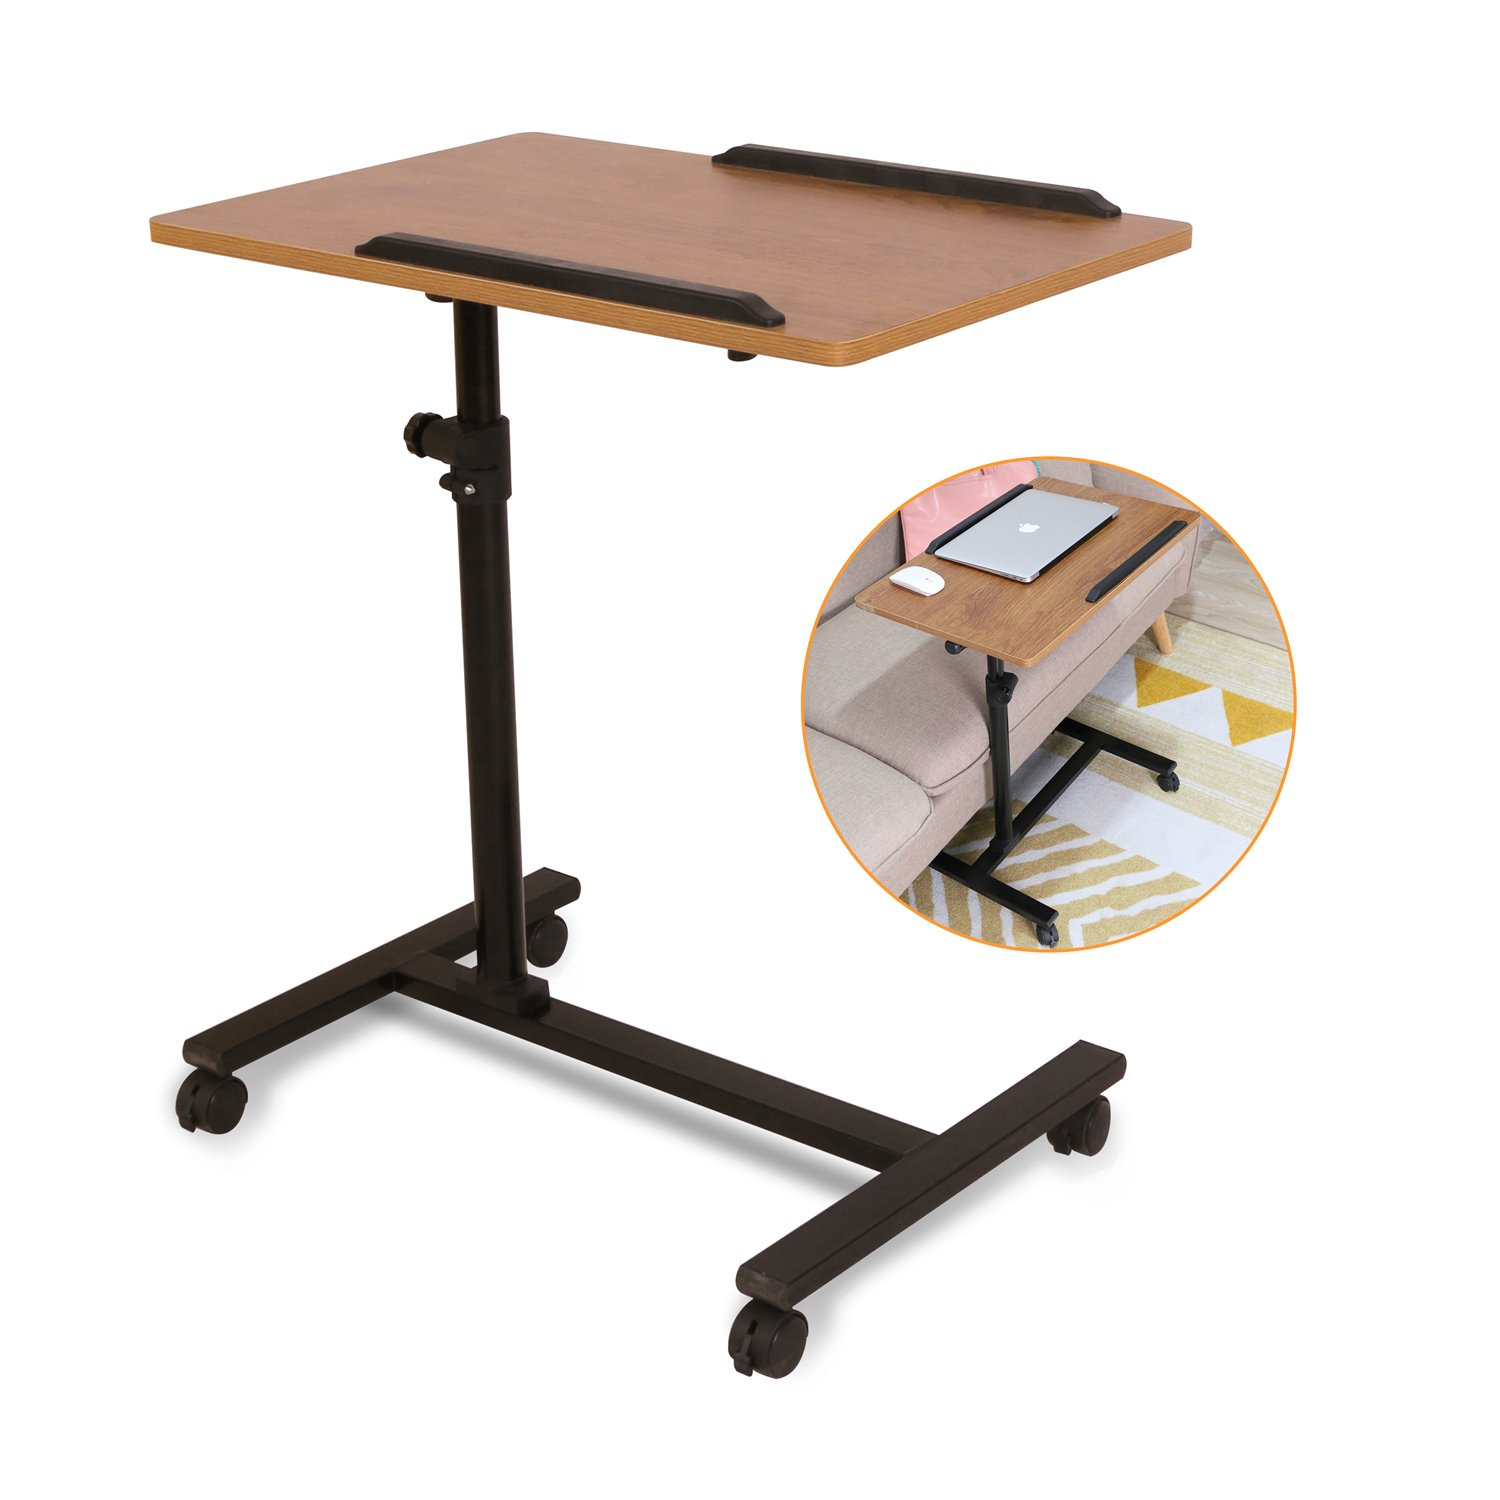 Ebuynar Adjustable Overbed Table Laptop Cart with Wheels (Single Side,Dark Brown)